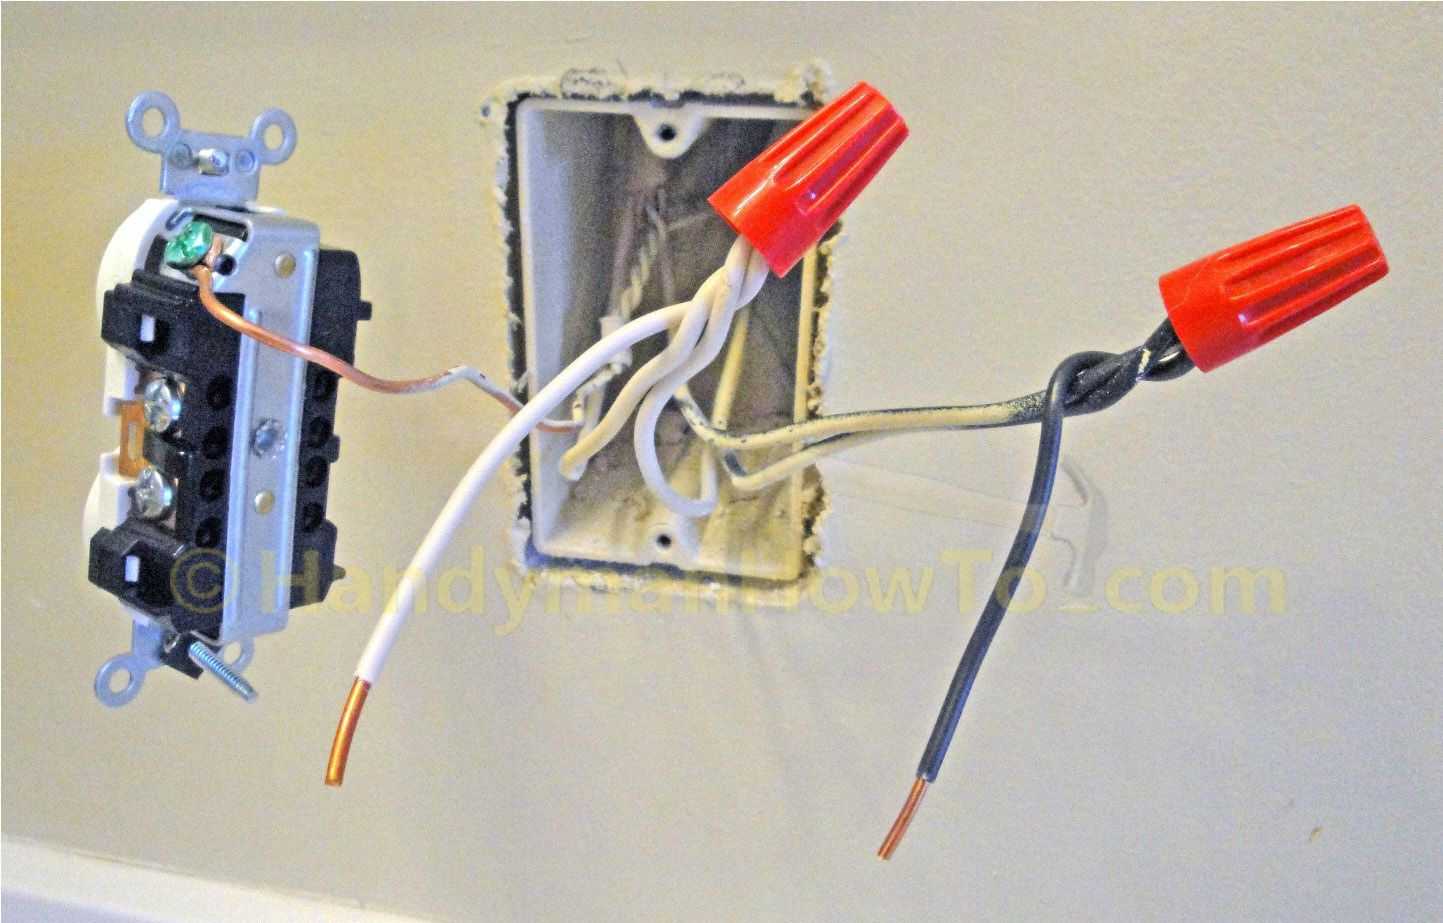 eb27a8c4cf82653085b1e6b3e2eb6f6a backwiring an electrical outlet in parallel with pigtail pigtail wiring diagram at honlapkeszites.co